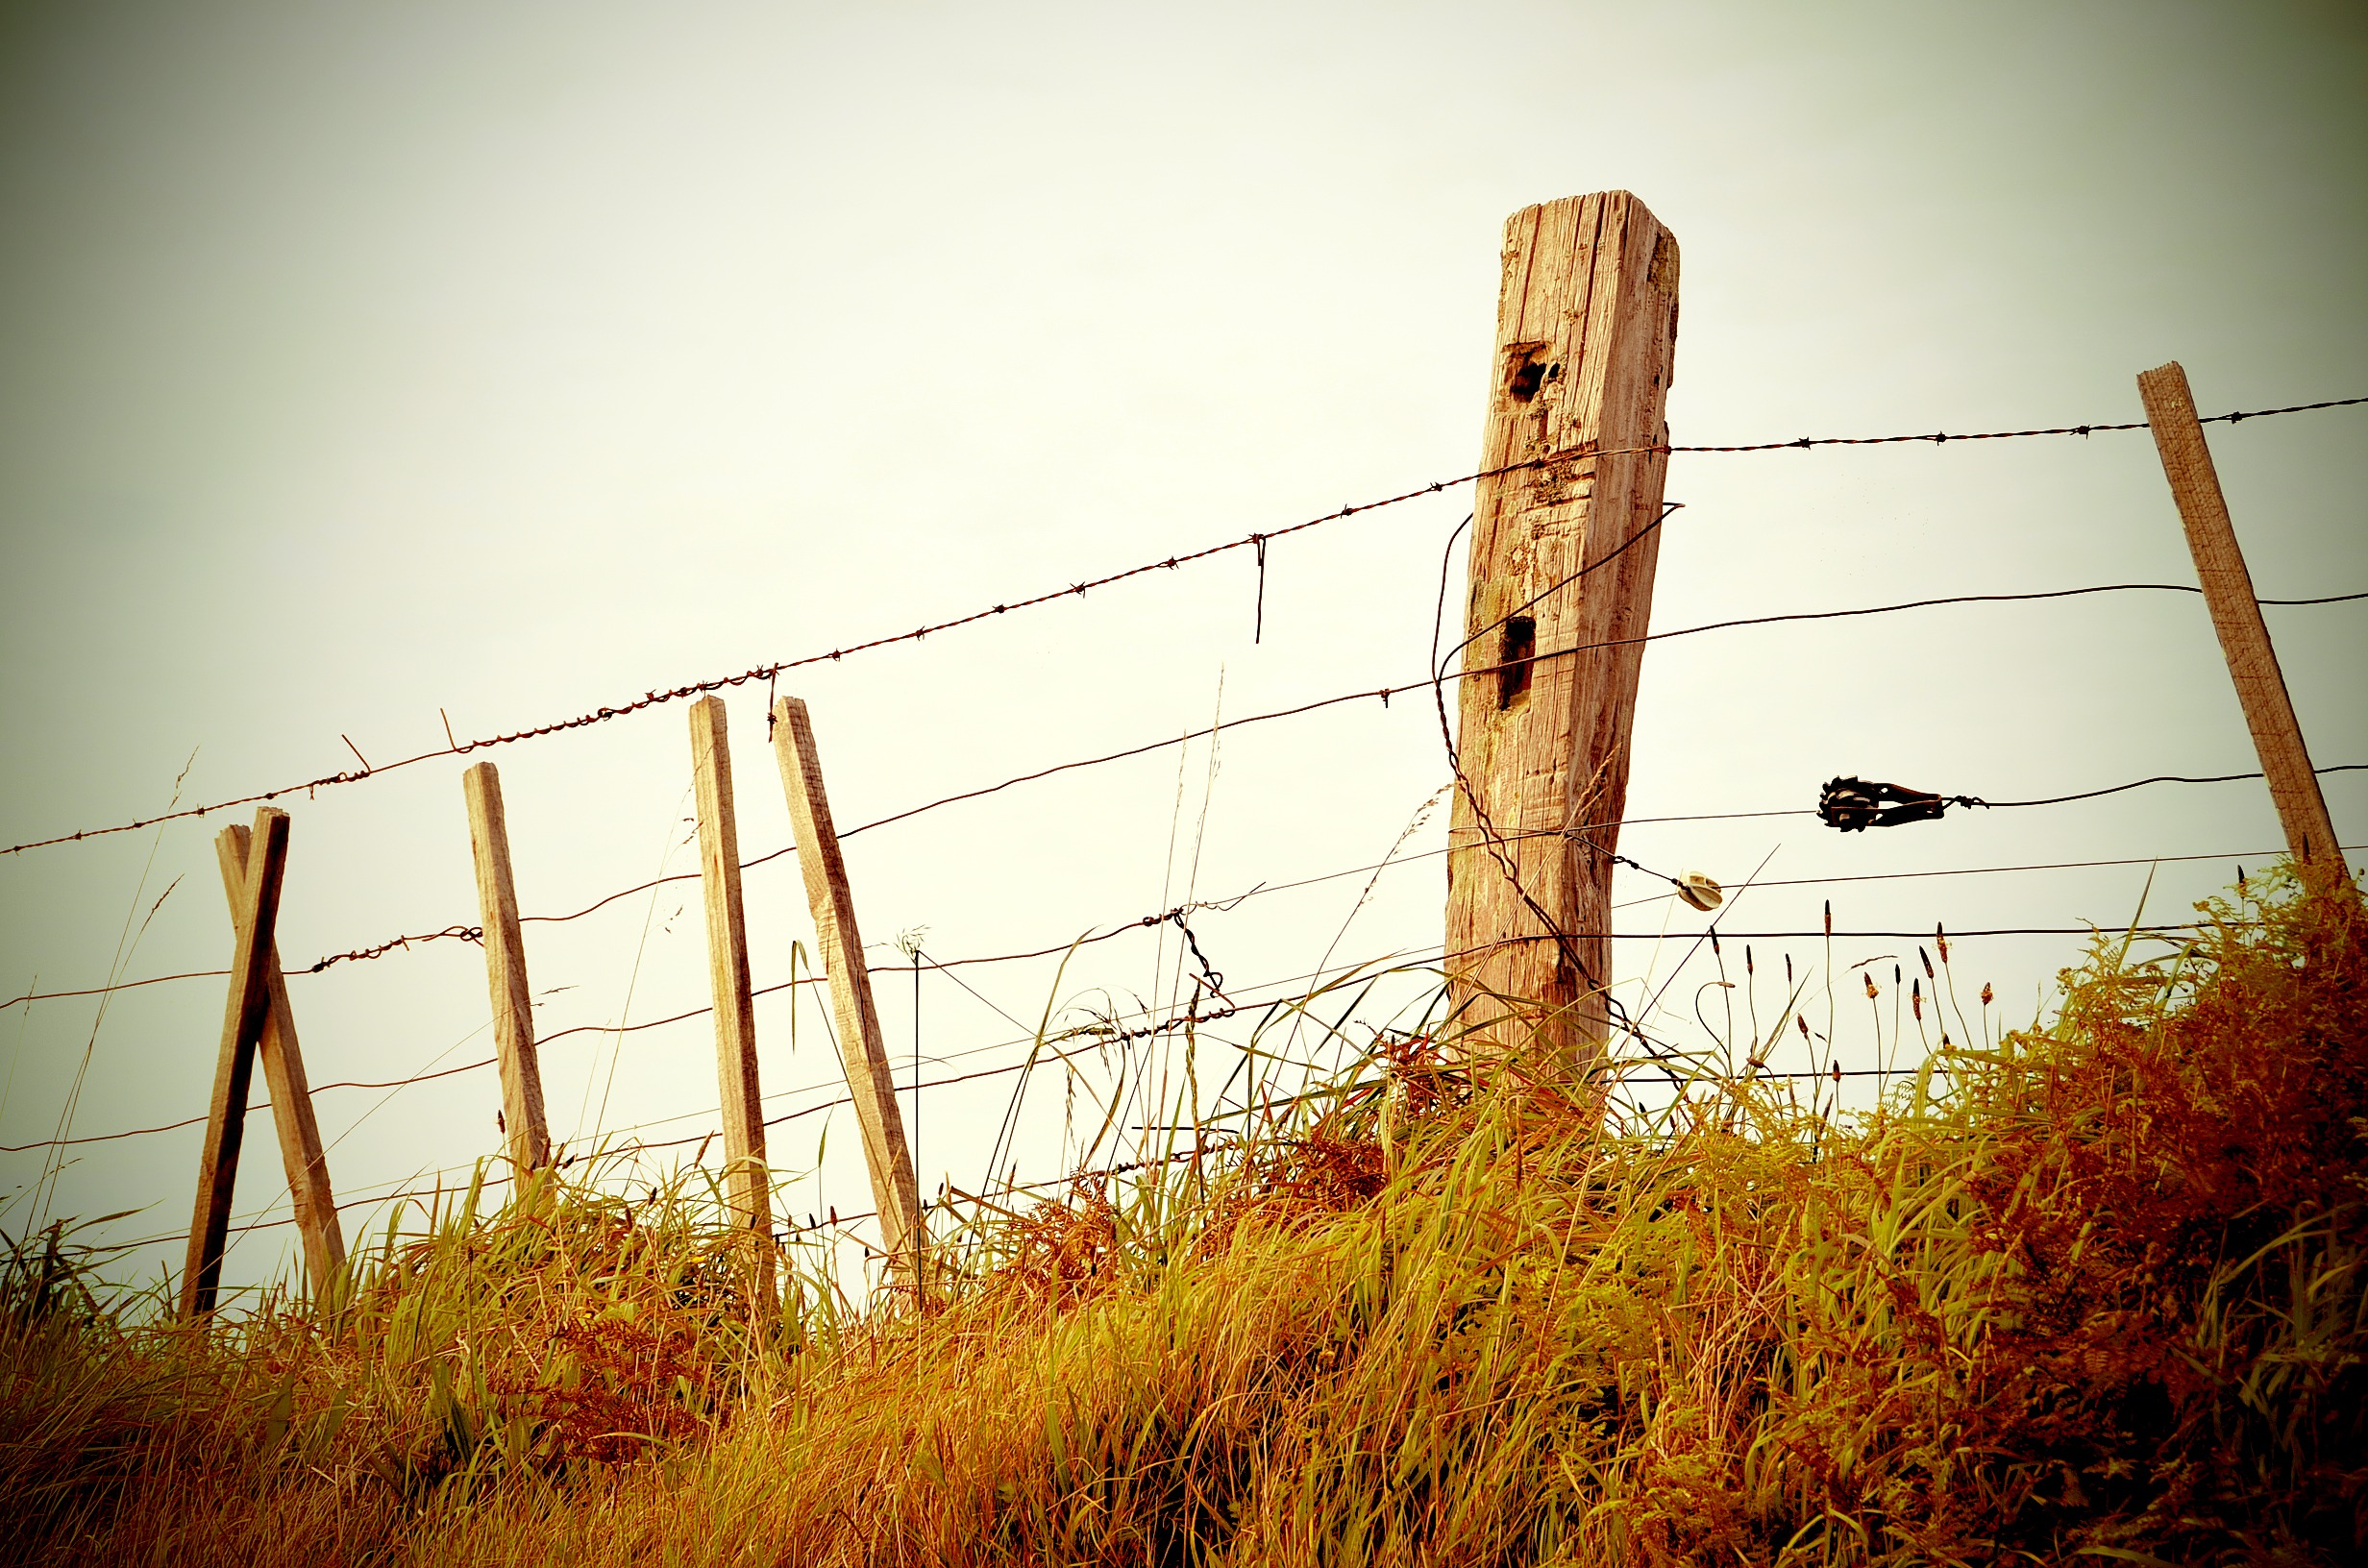 Fence, poles, field, wire, nature, weed